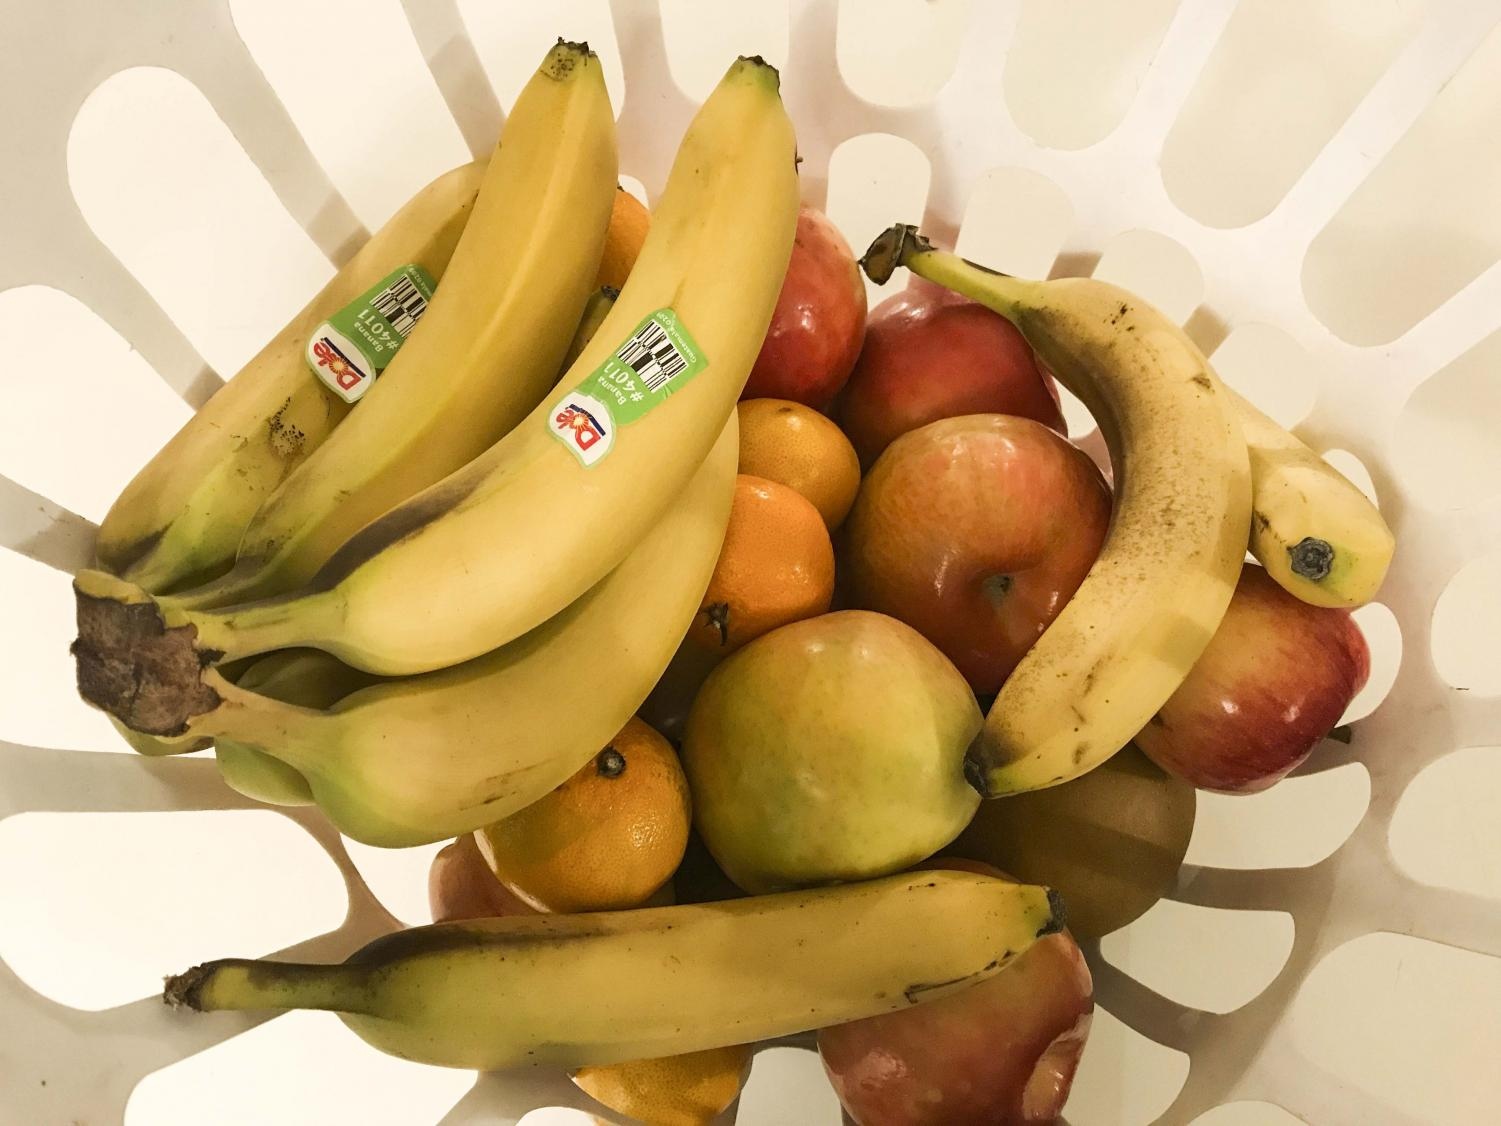 A bowl of bananas, apples and oranges, delicious and nutritious snacks for on and off campus.